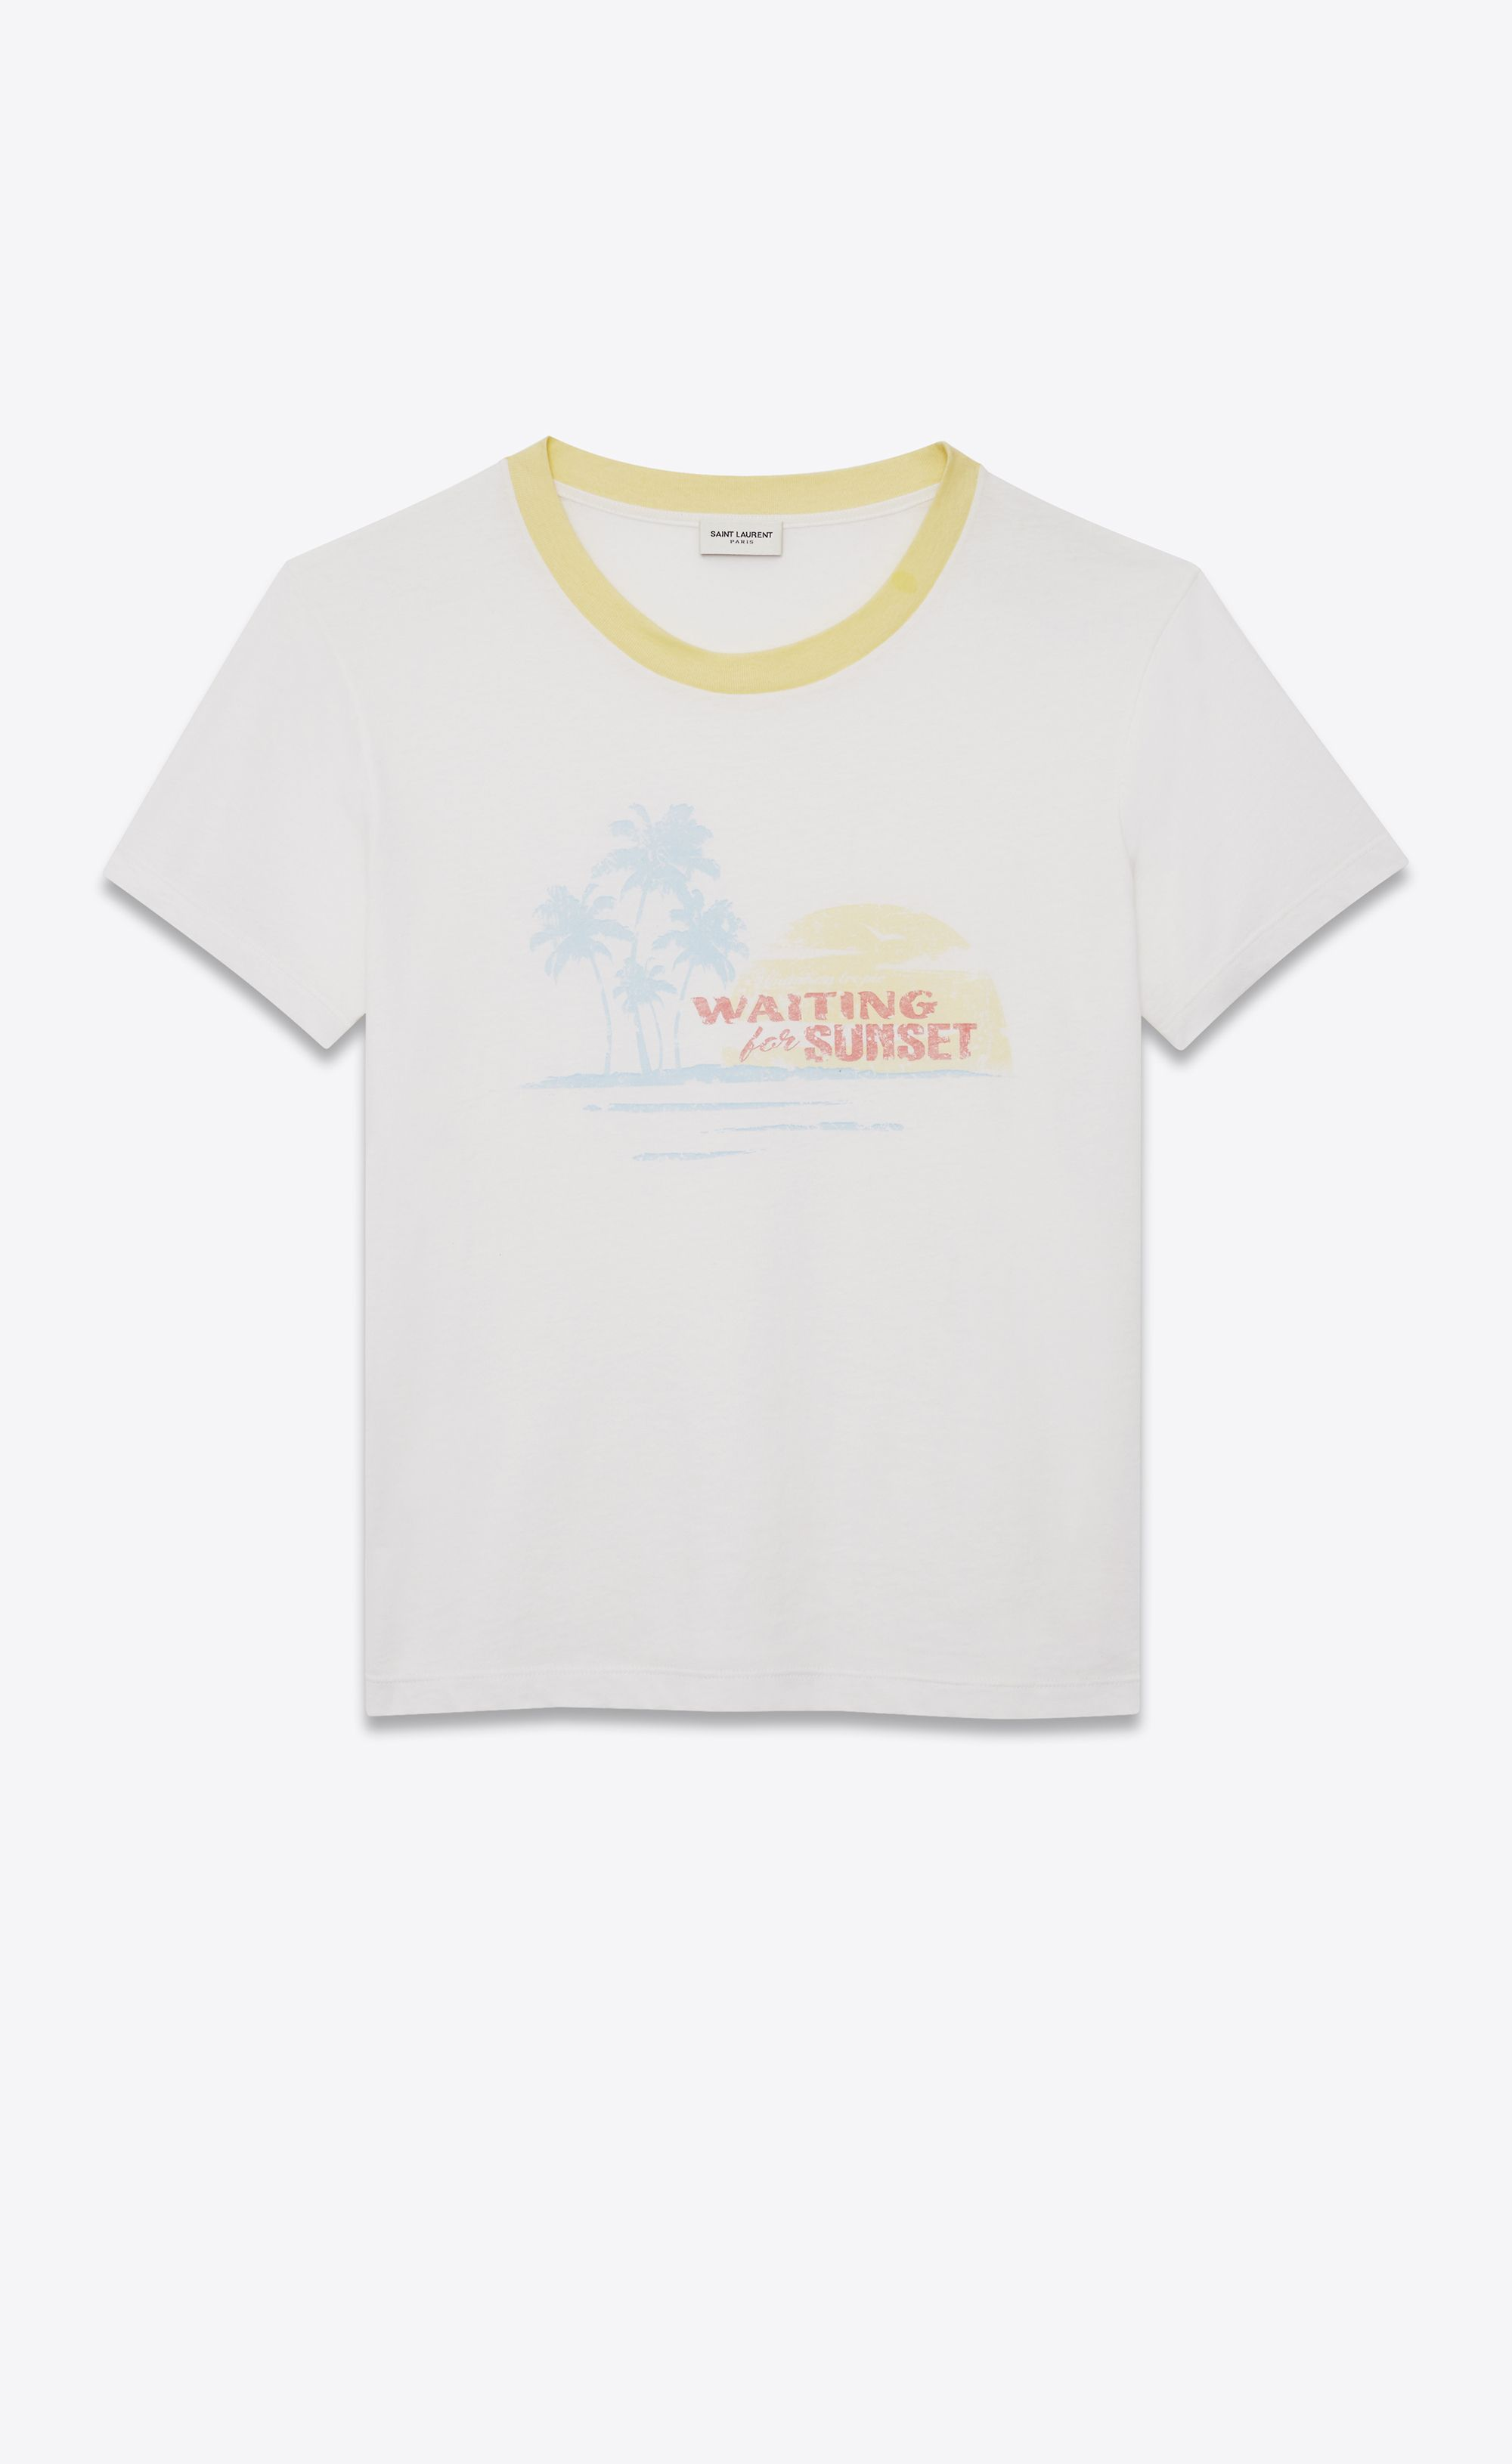 cae44d6eb0 Saint Laurent - T-shirt with waiting for sunset print in off-white ...